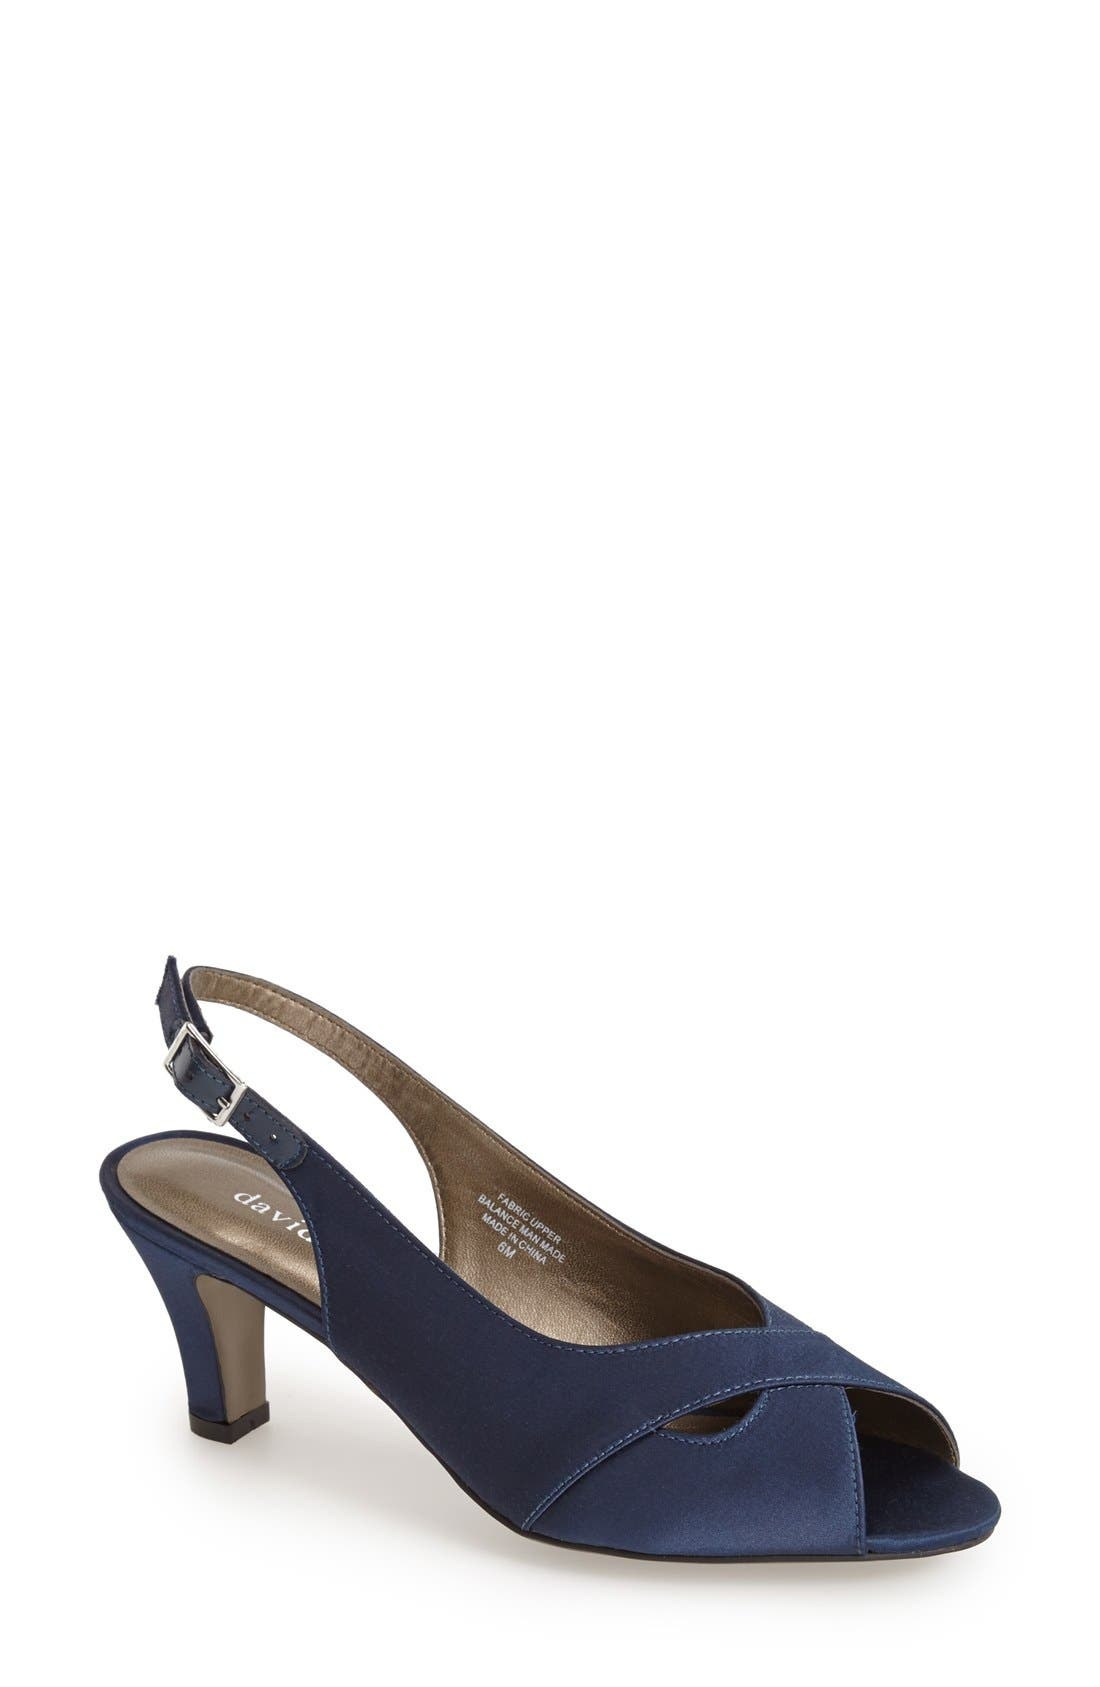 Alternate Image 1 Selected - David Tate 'Palm' Slingback Satin Sandal (Women)